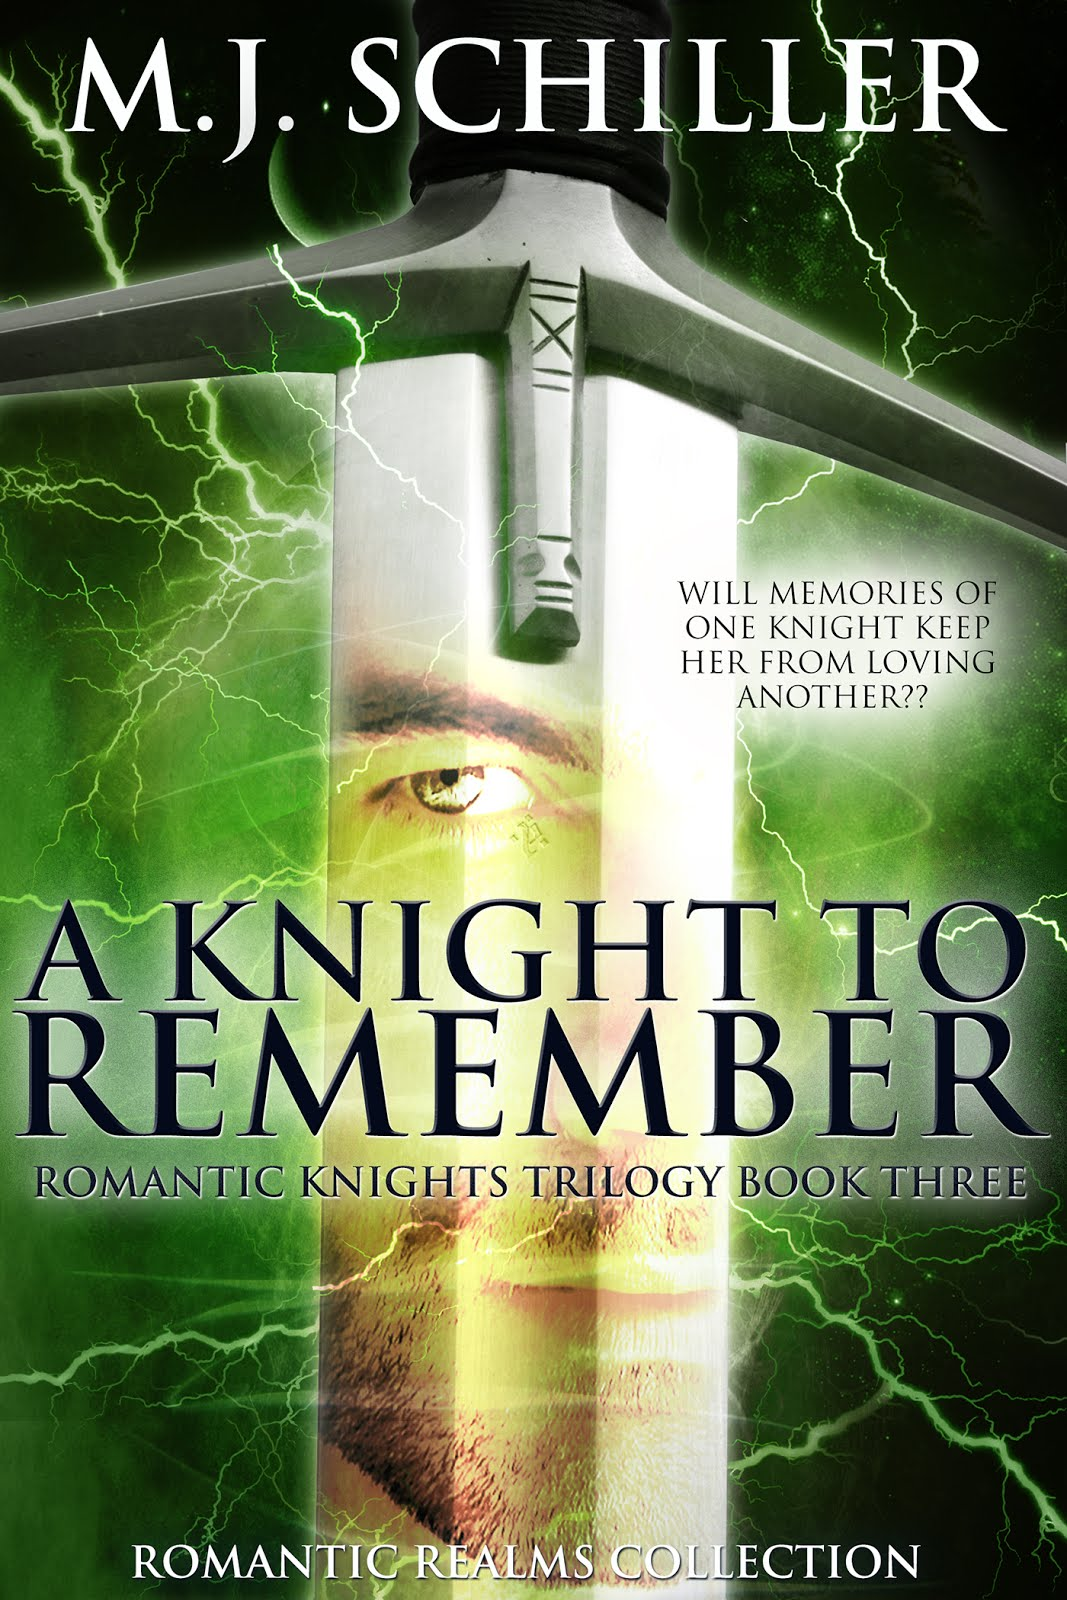 A KNIGHT TO REMEMBER